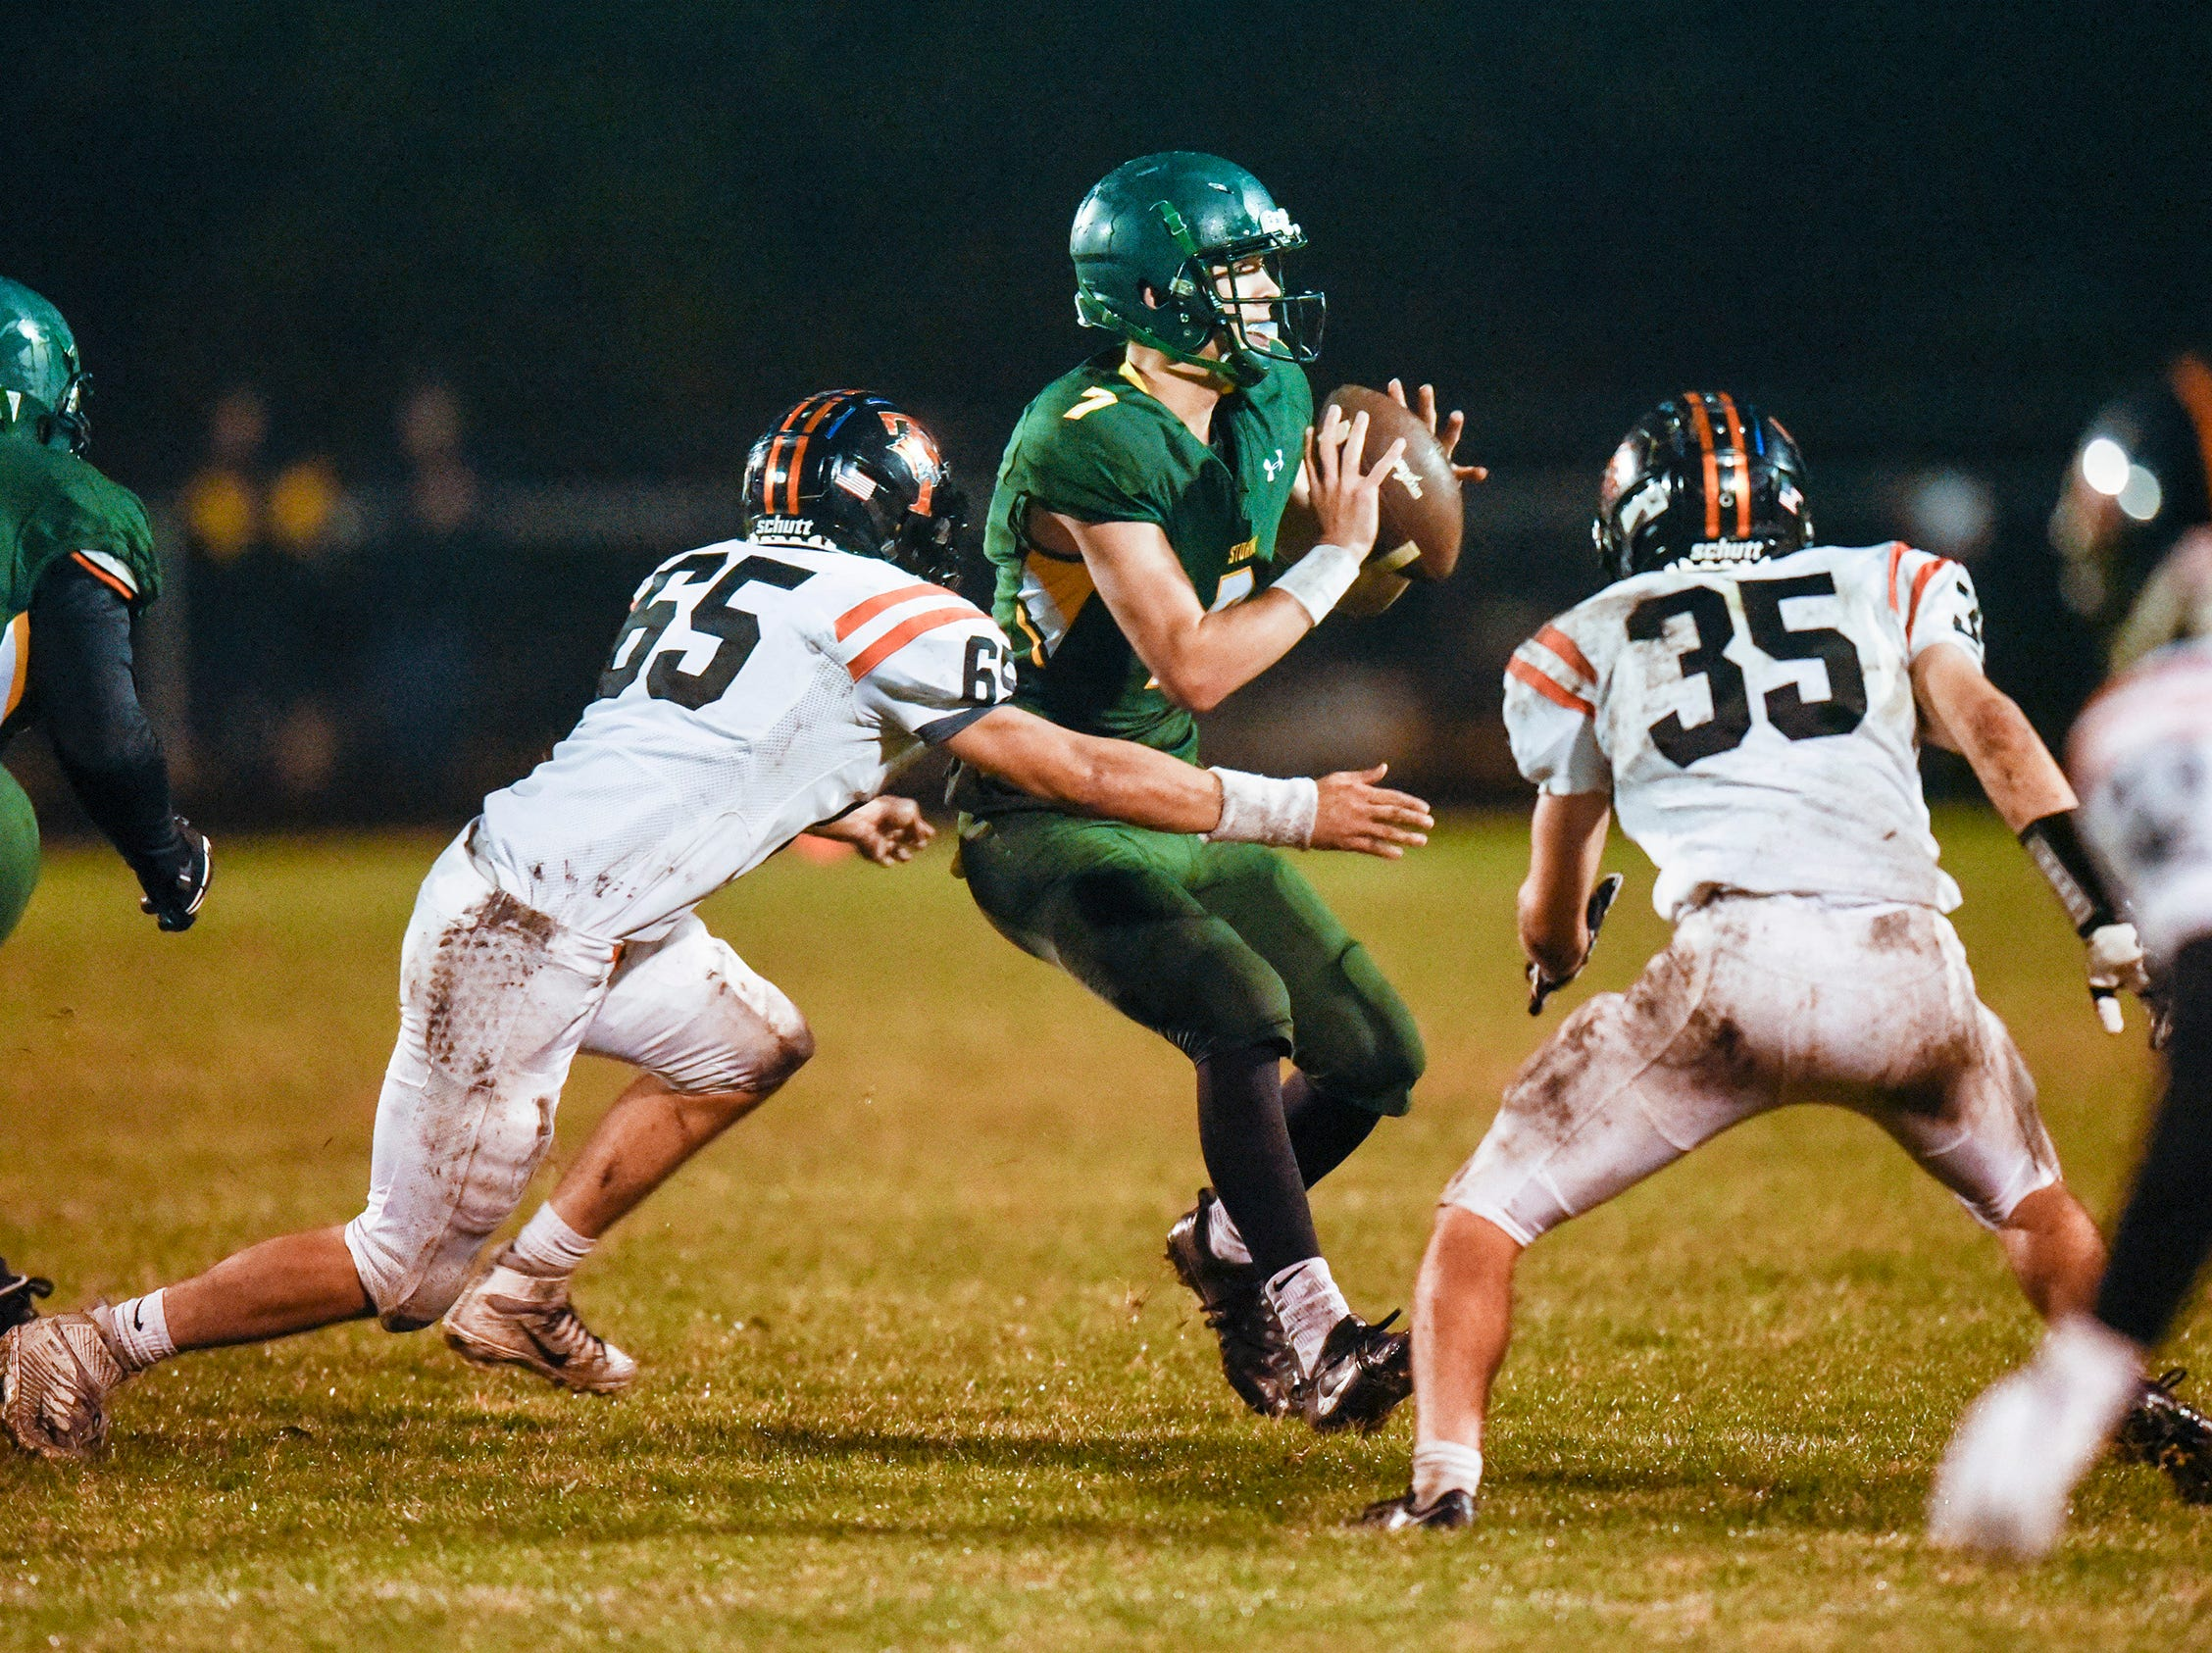 Sauk Rapids quarterback Cade Milton-Baumgardner is tackled by the Tech defense during the first half Friday, Oct. 5, in Sauk Rapids.